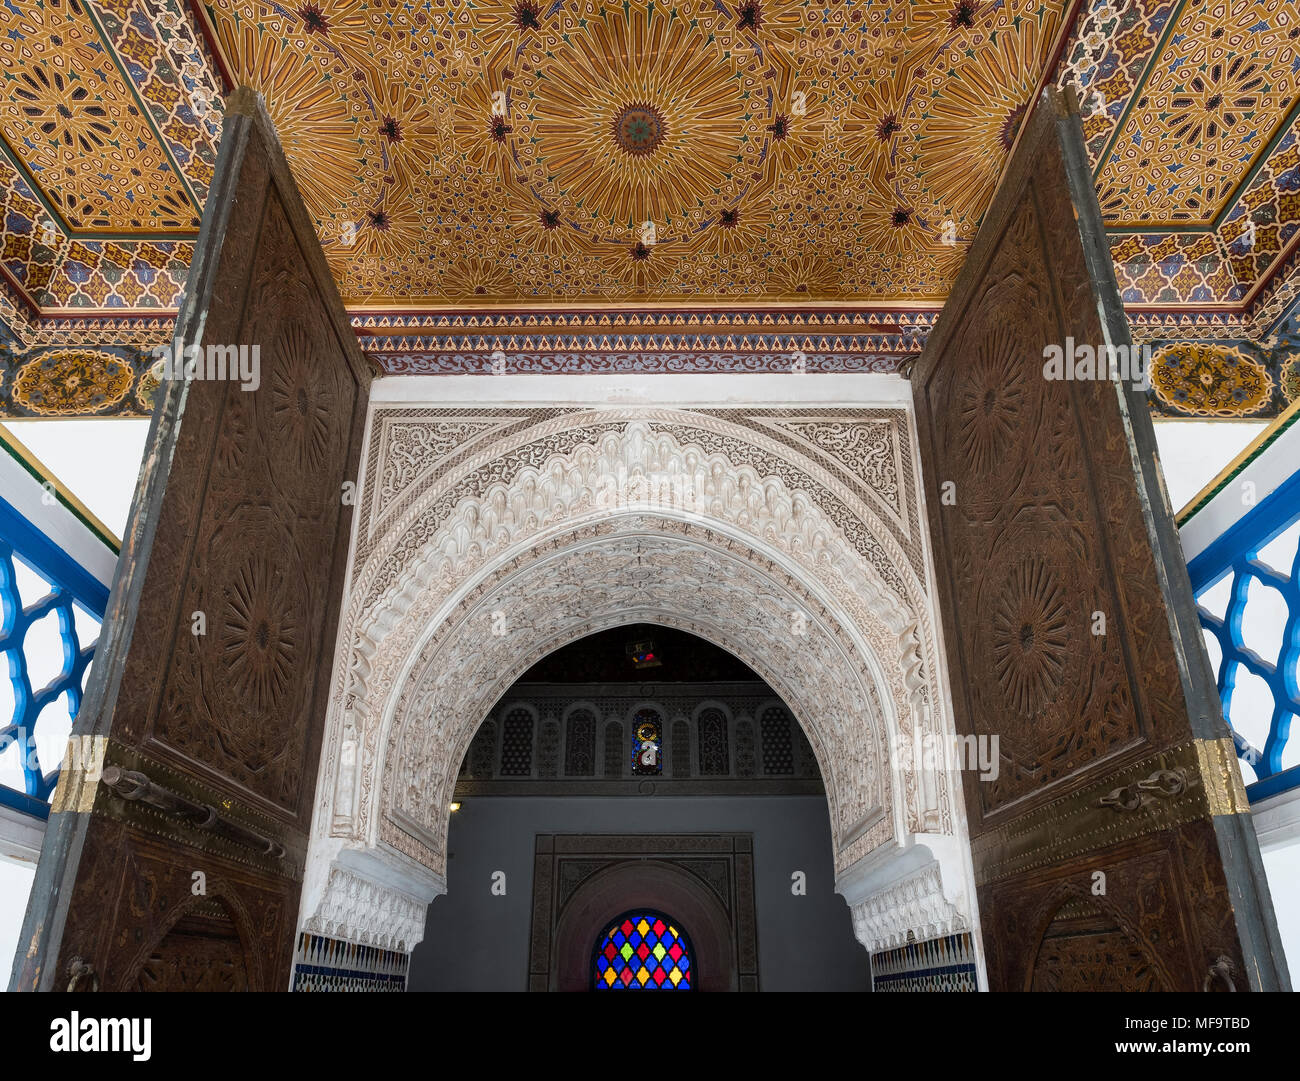 Exquisite Ornate detail of a doorway in the Bahia Palace, Marrakech, Morocco - Stock Image